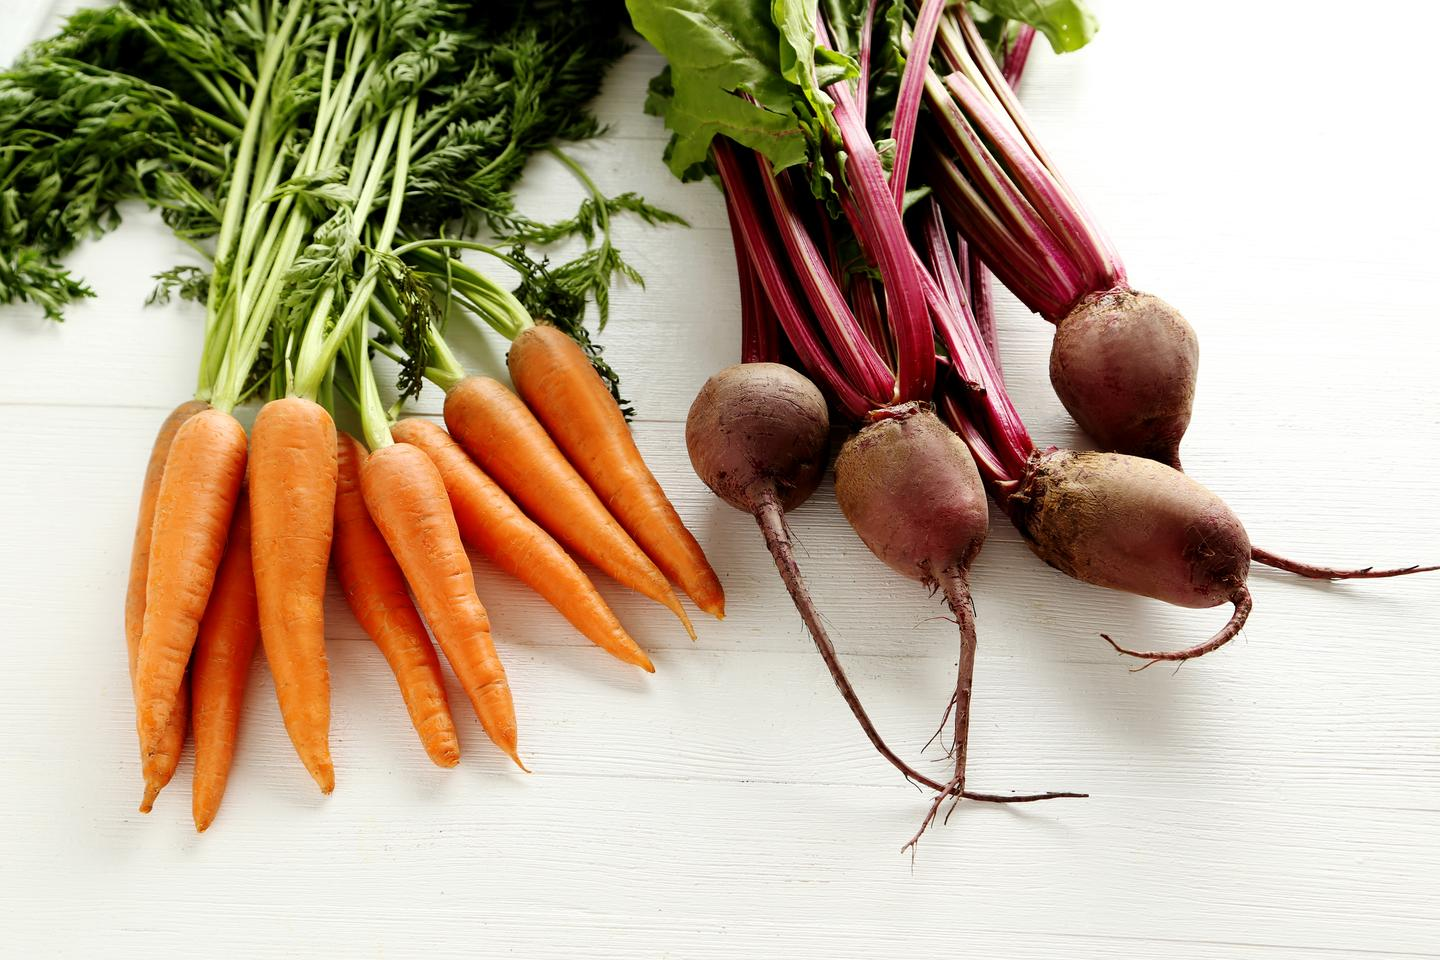 The enhanced concrete contains nano-platelets derived from carrot and beet root fibers